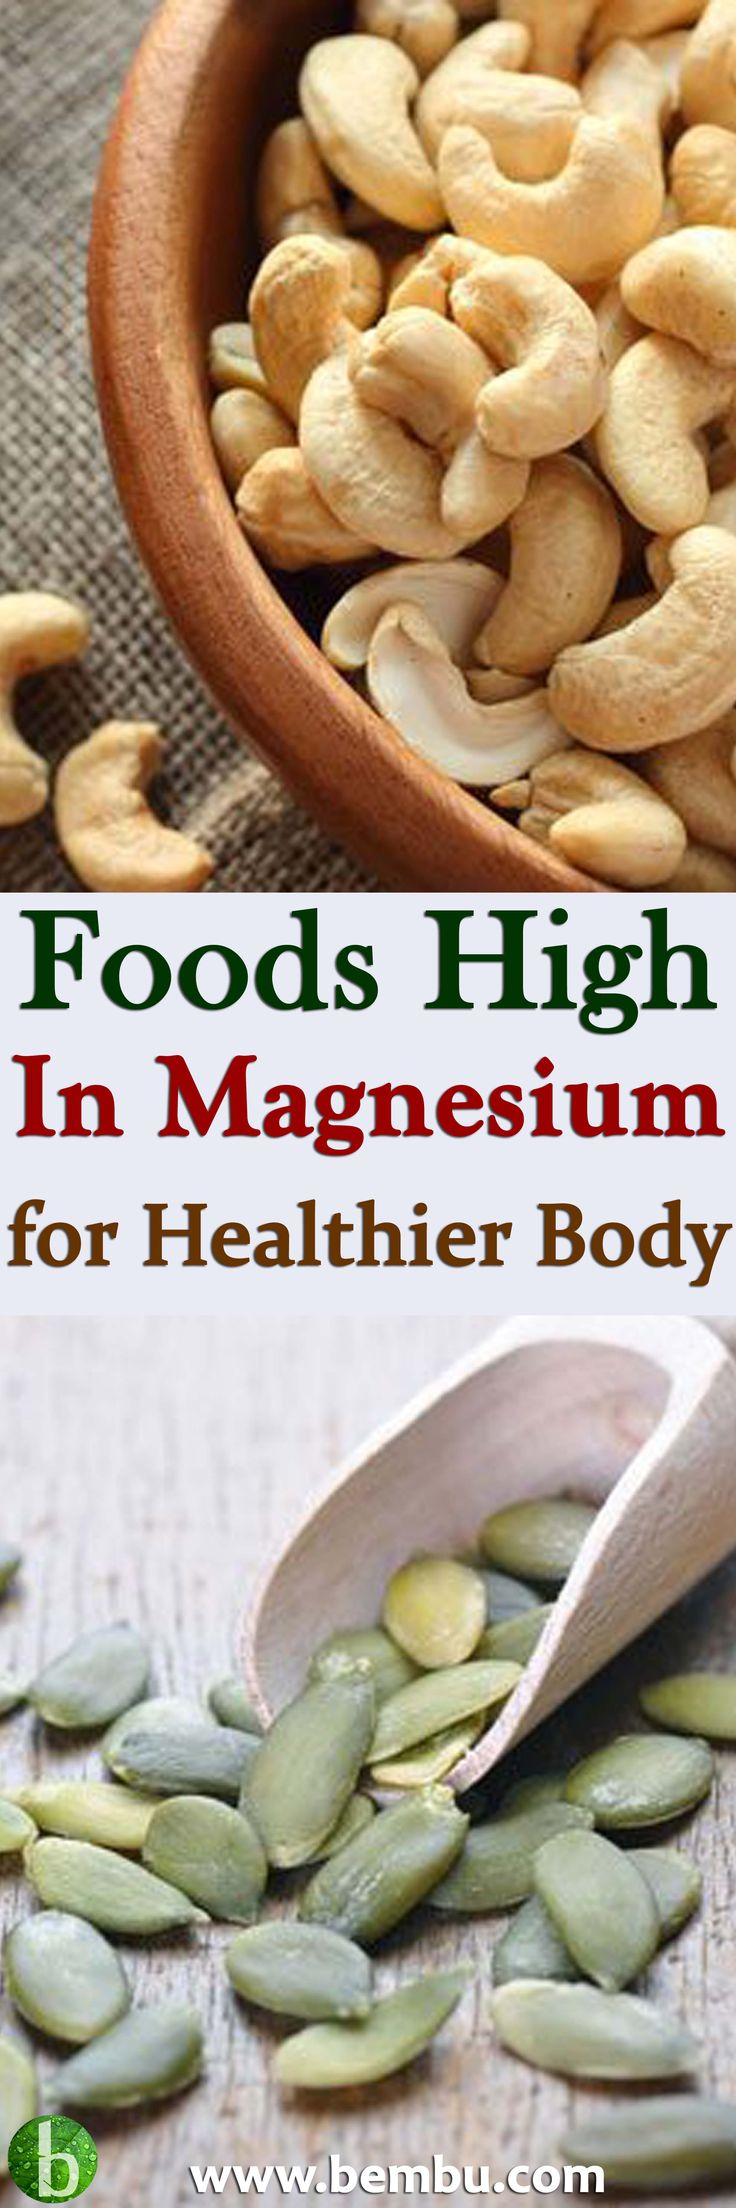 Lentils: 122mg Magnesium (31% DV) Lentils are a good source of magnesium, nearly rivaling their bean cousins Health Tips │ Health Ideas │Healthy Food │Health │Food │Vitamin │Healing │Natural Remedies │Nutrition │Natural Cure │Herbal Remedies │Natural beauty #Health #Ideas #Tips #Vitamin #Healthyfood #Food #Vitamin #Healing #Remedies #Nutrition #Cure #Herbalremedies #Naturalbeauty